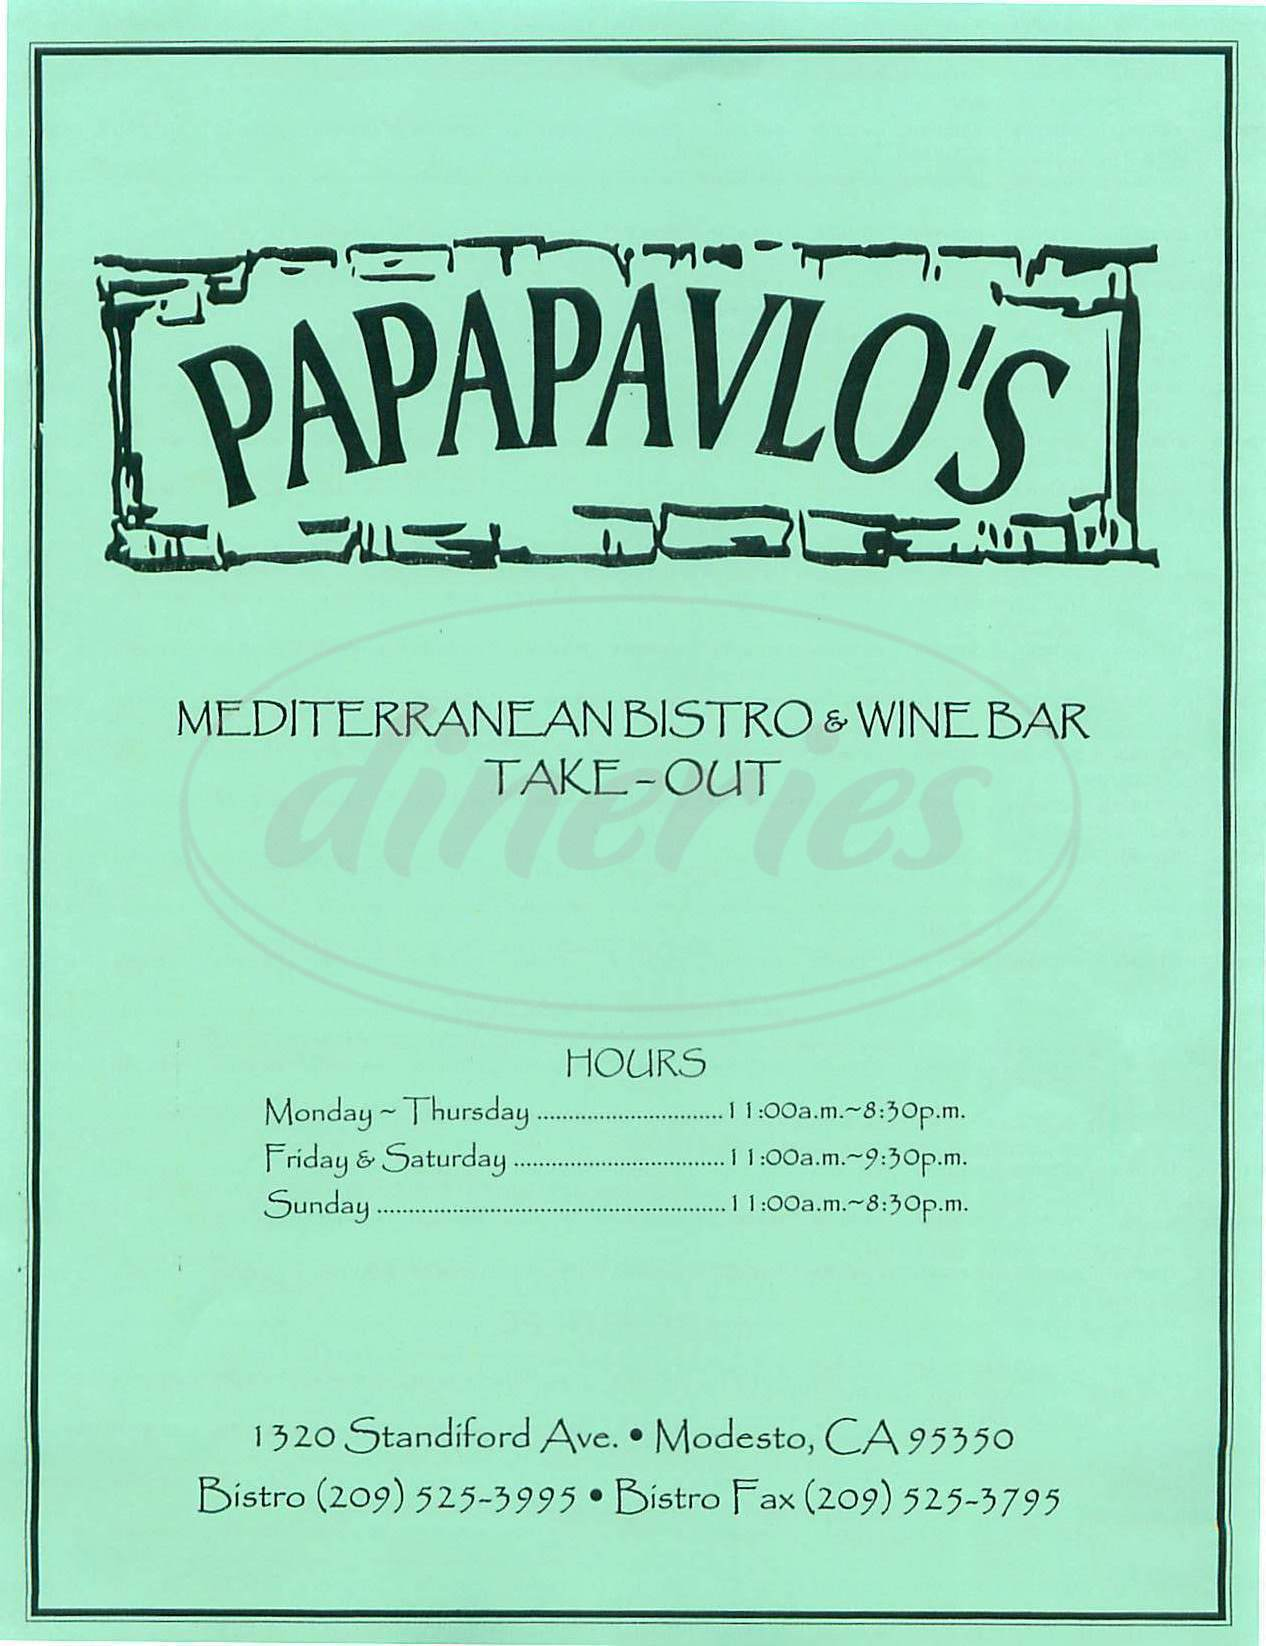 menu for Papapavlos Mediterranean